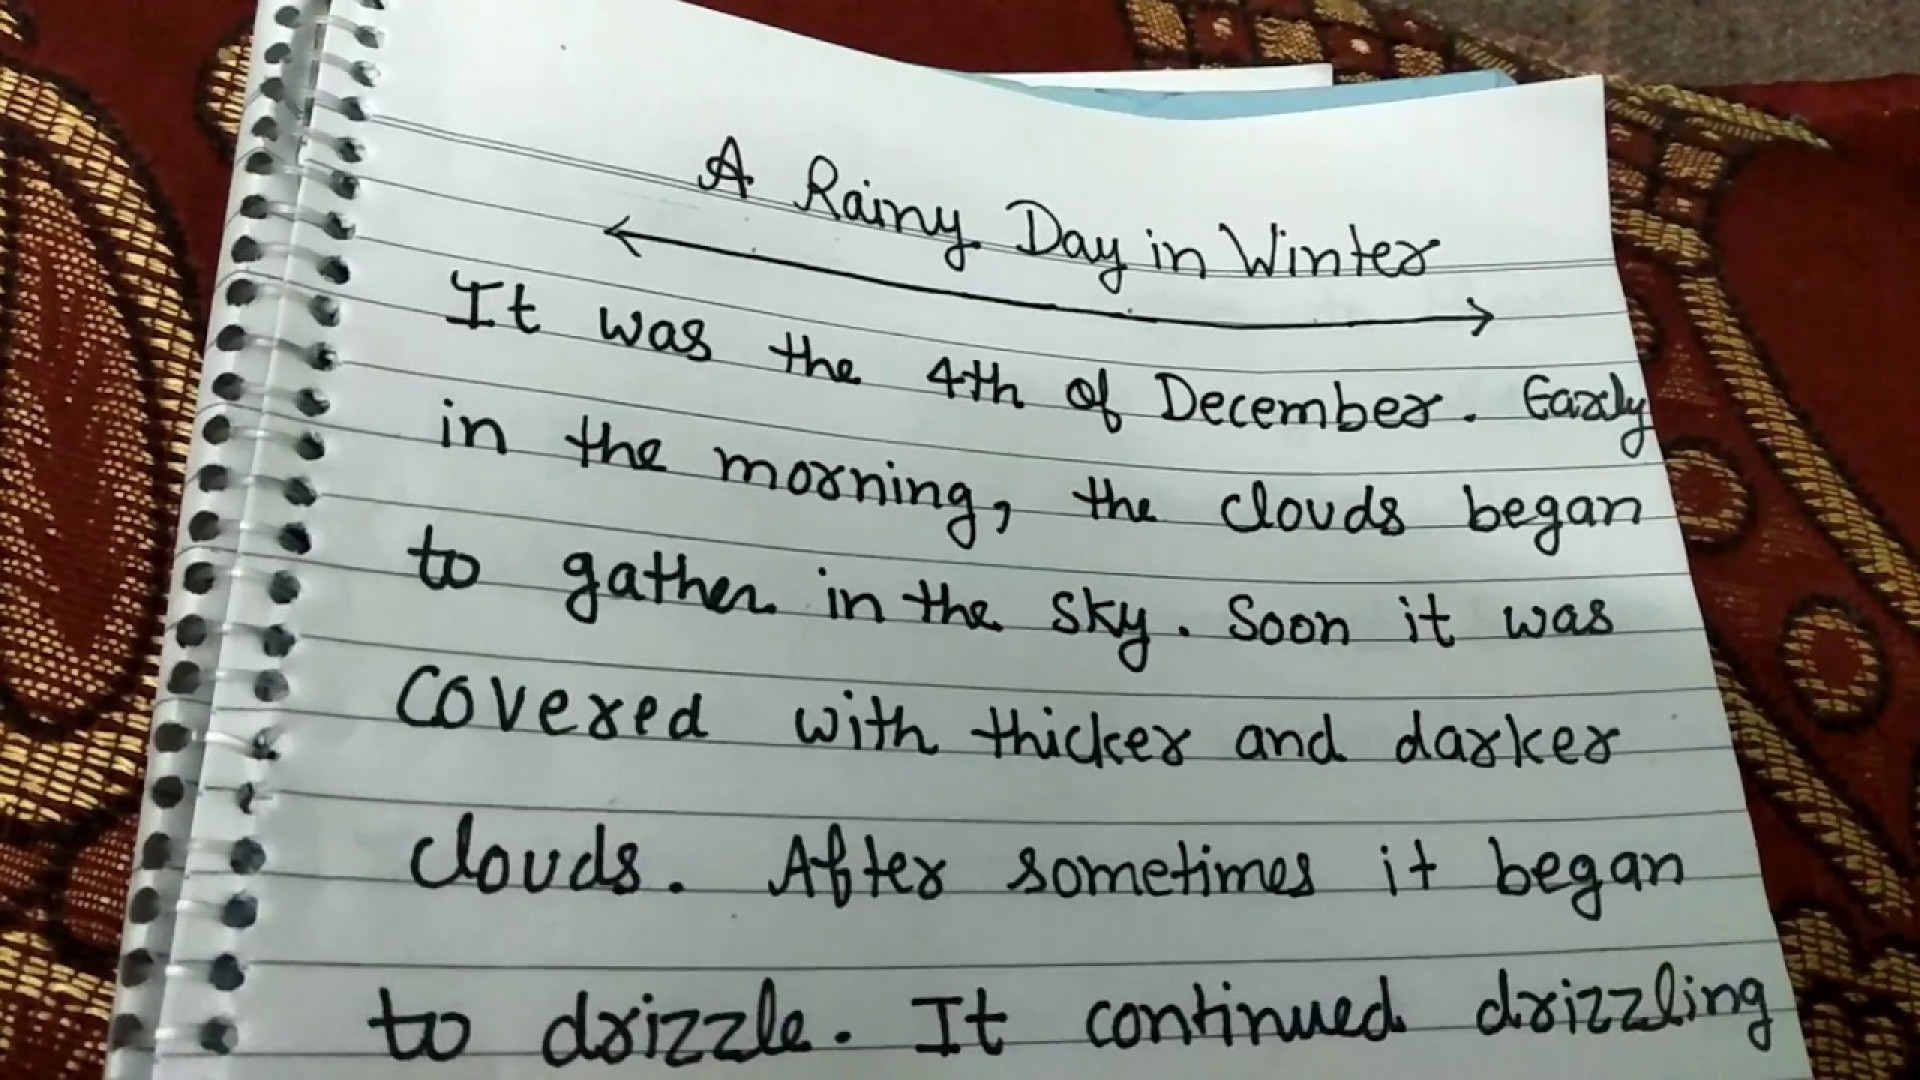 009 Favorite Day Of The Week Essay Example Rainy In Winter Short Smart And Easy For Kids My Favourite Writing Outstanding Sunday Is 1920